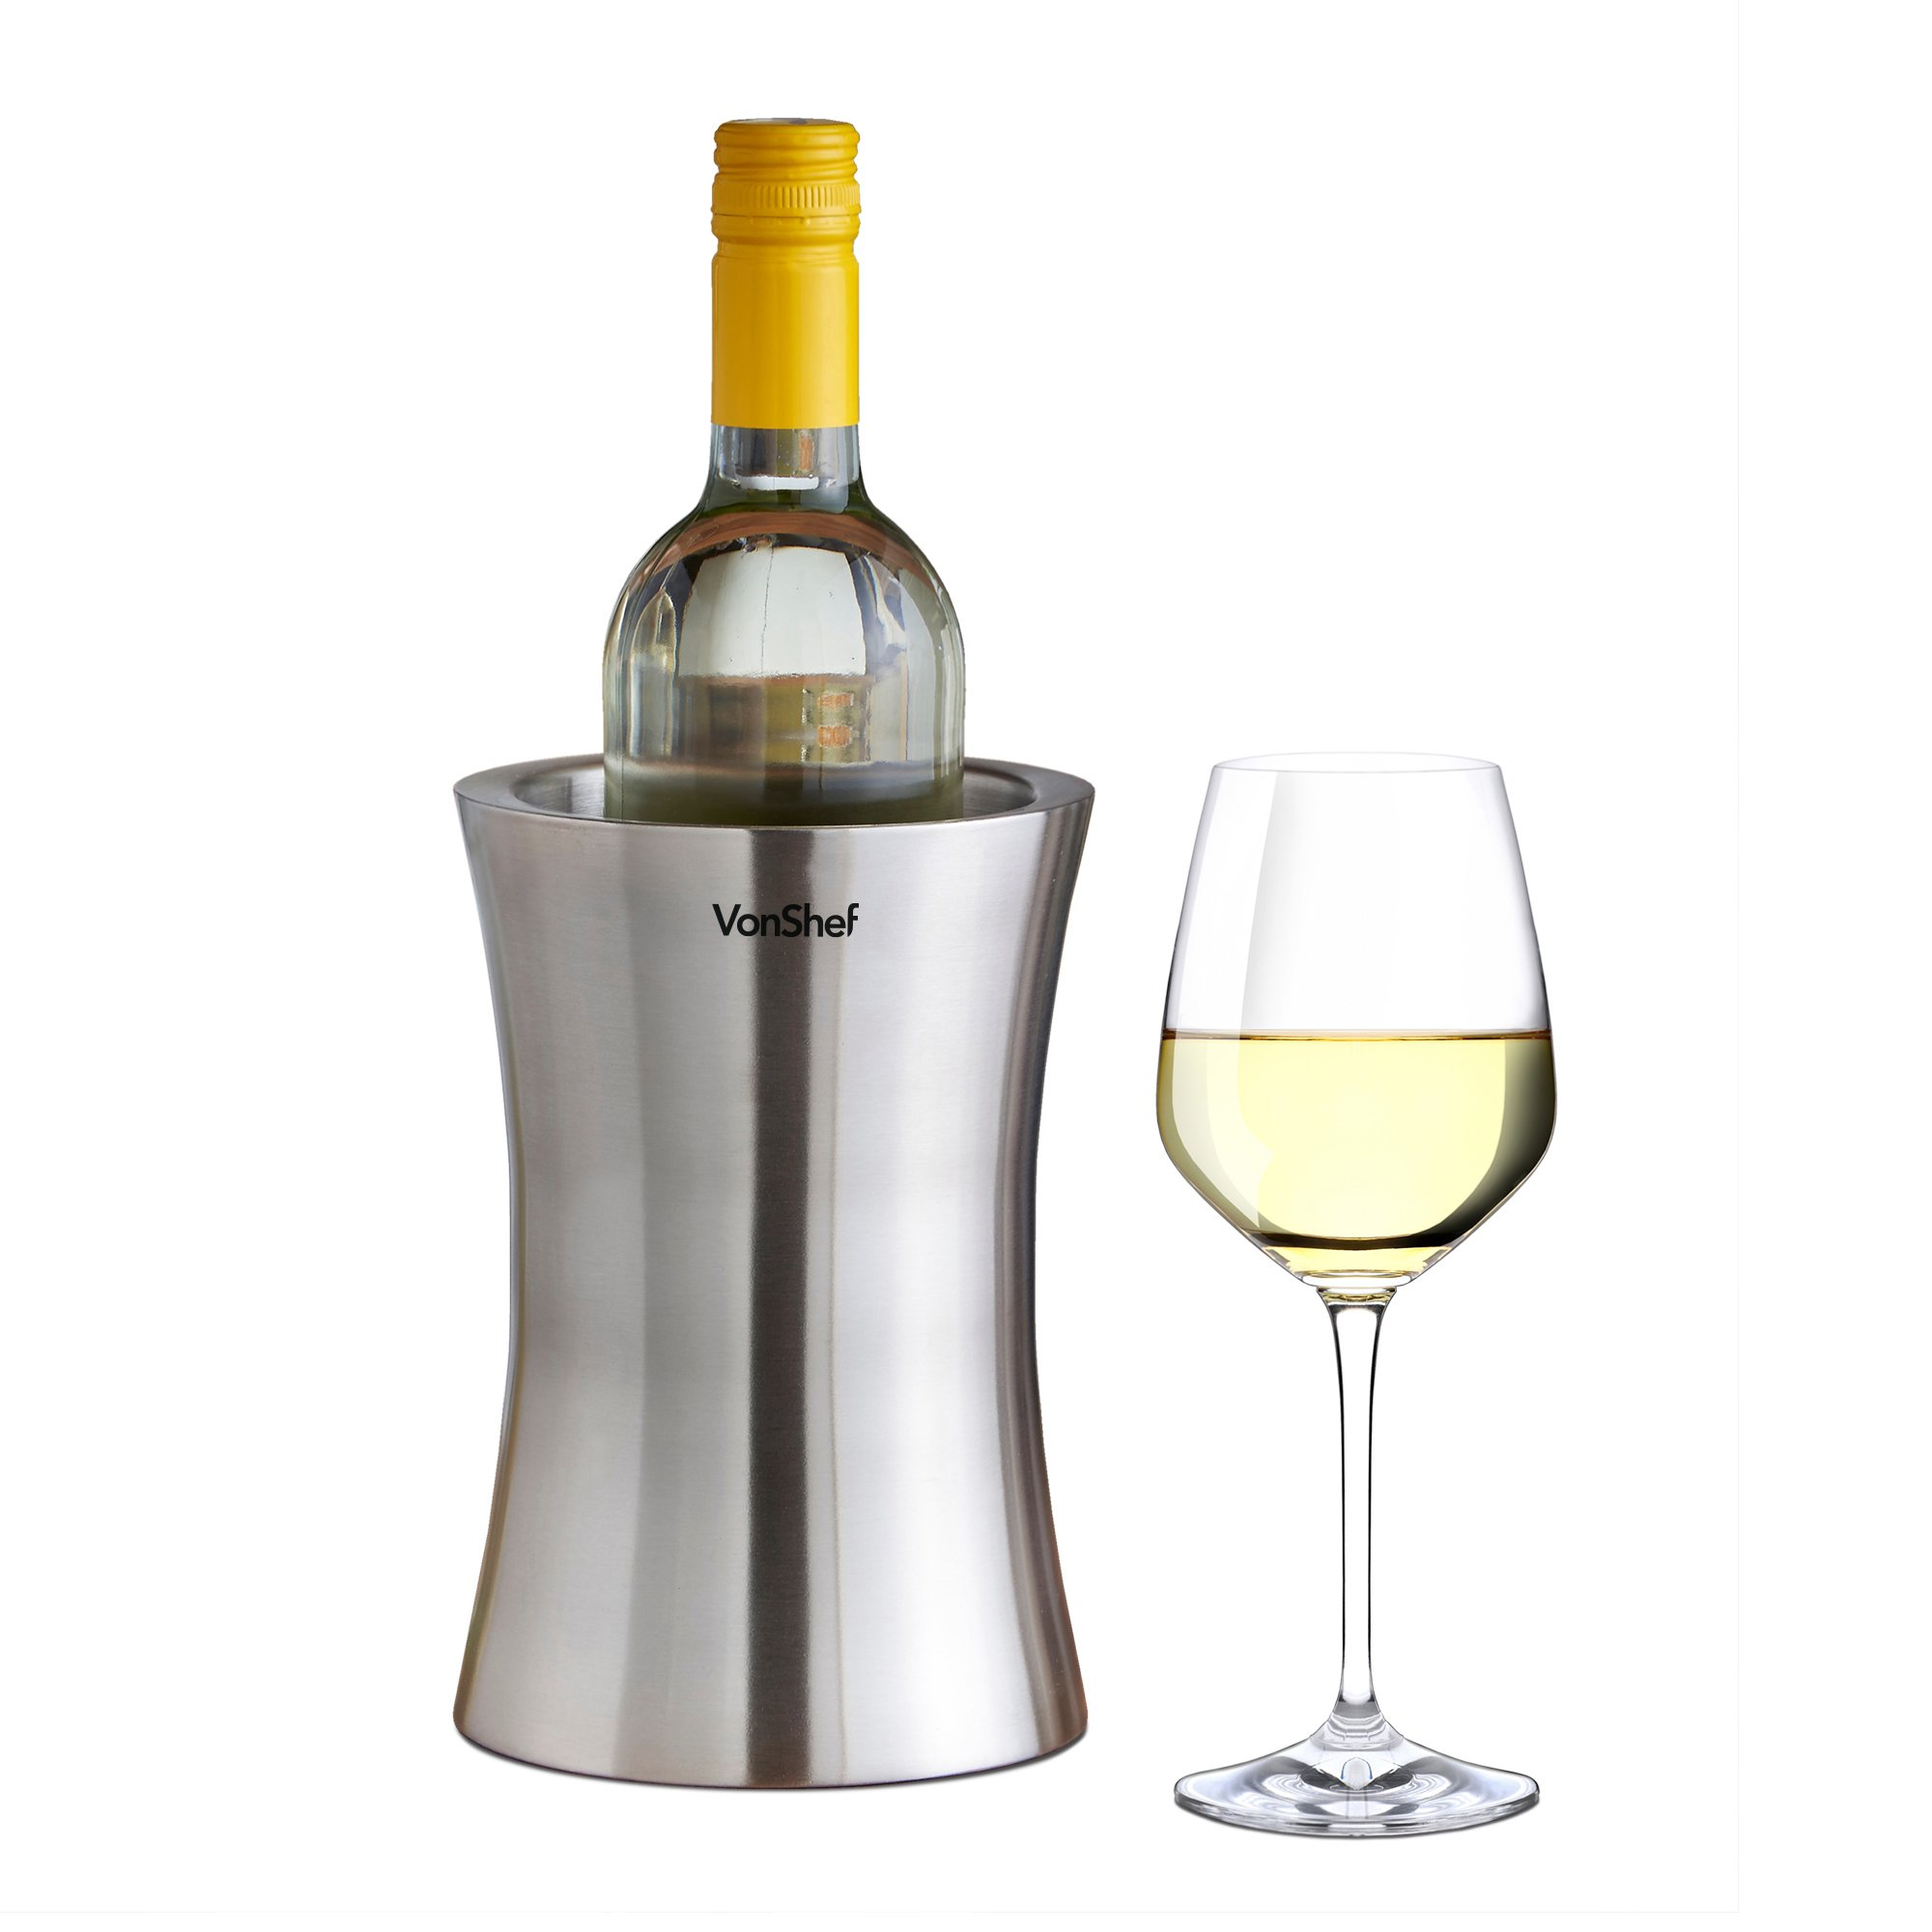 VonShef Wine Bottle Cooler Chiller, Stainless Steel, Double Walled, Stemless Holder